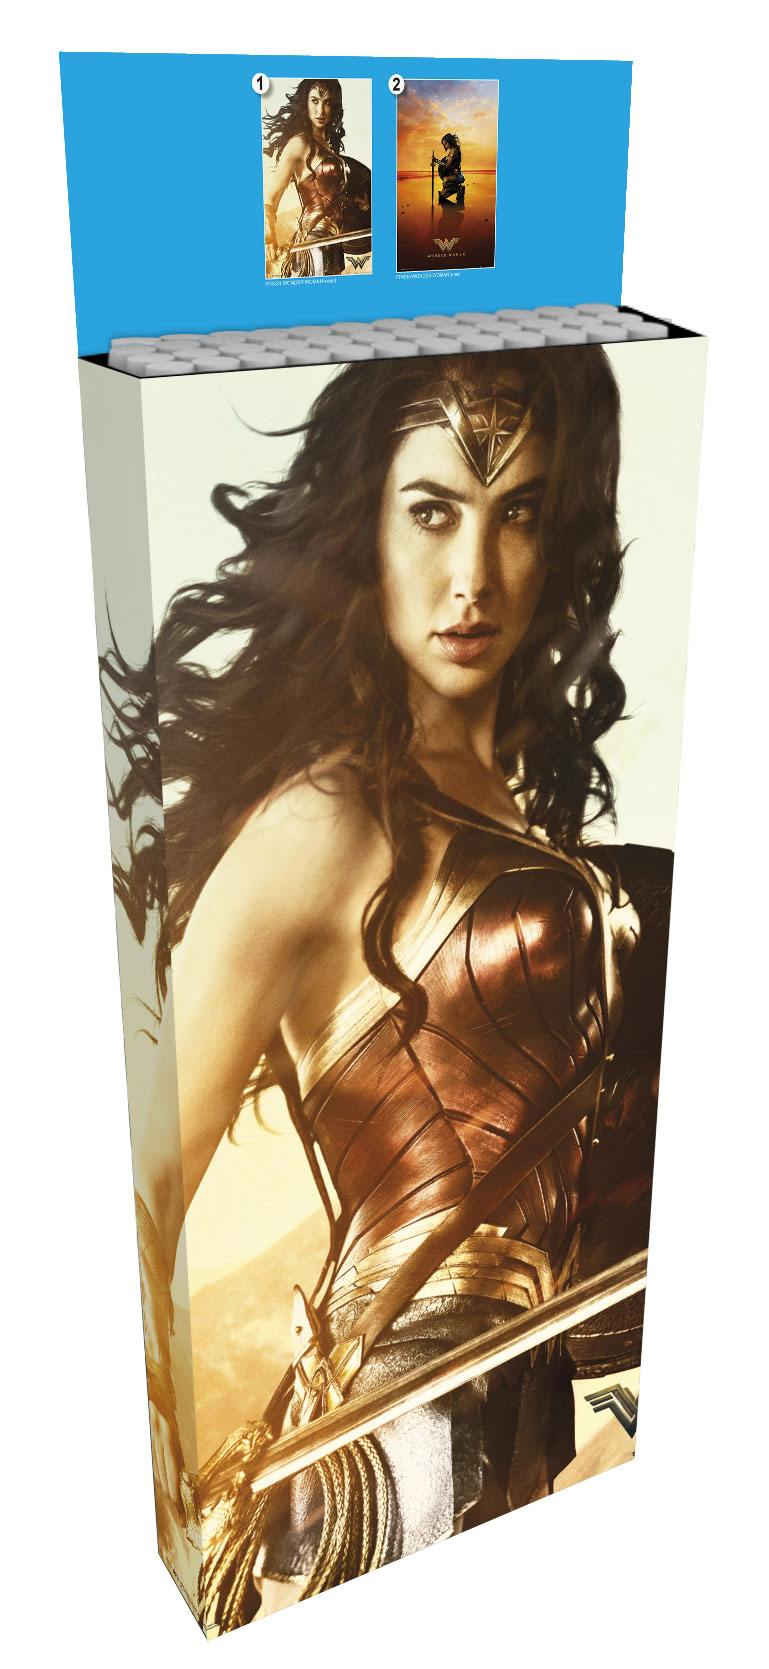 Wonder Woman Poster 61 x 91 cm Display (35)